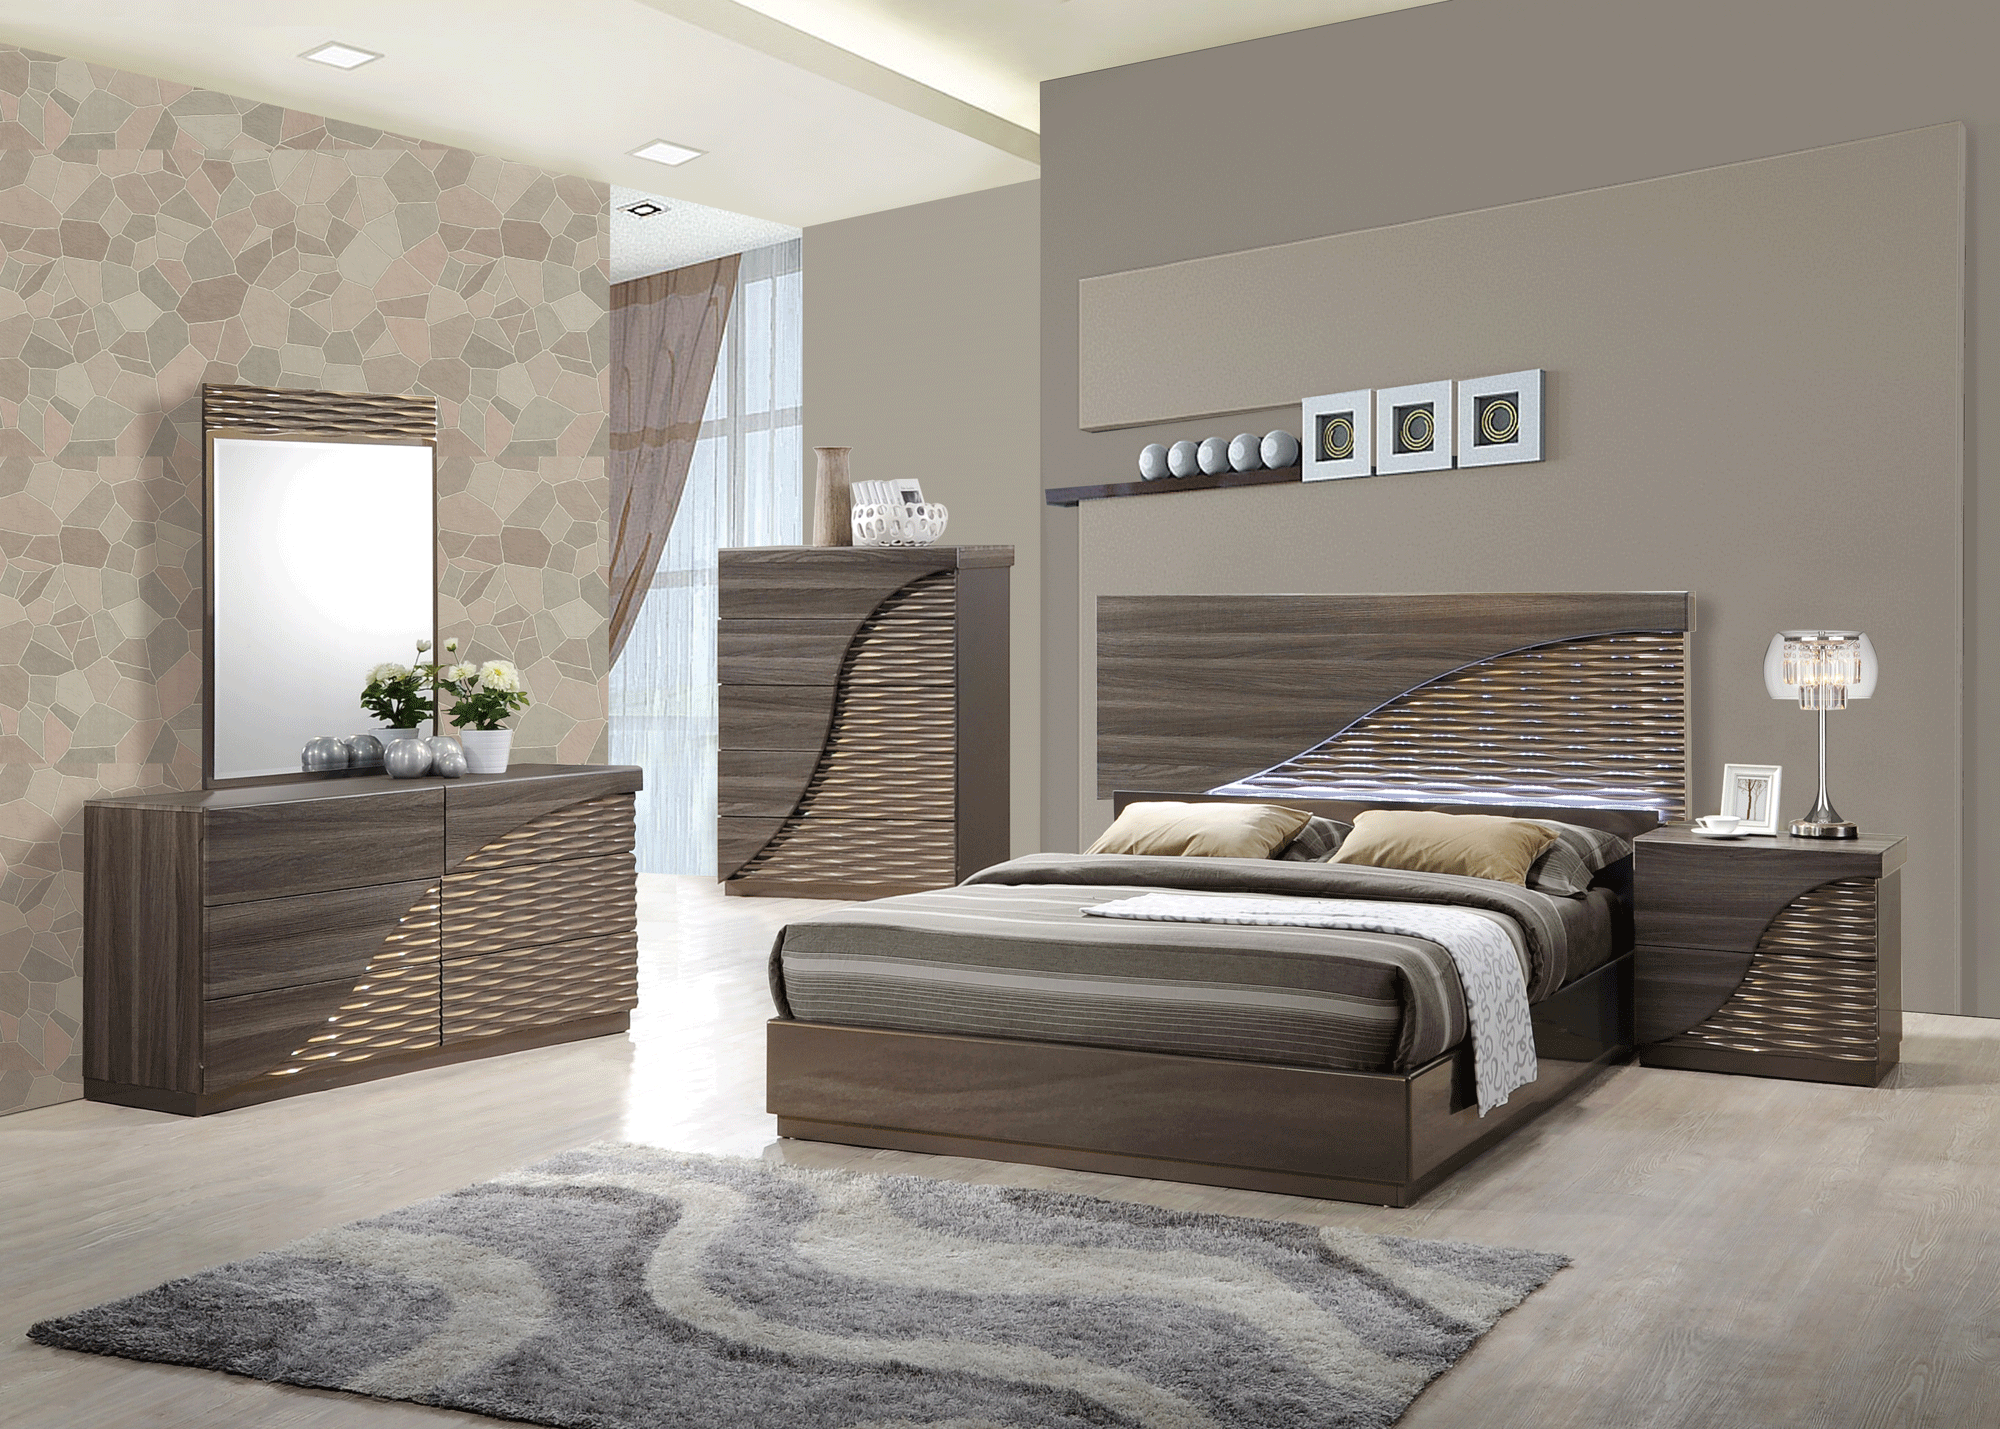 North Zebra Wood Gold Line Bedroom Set by Global Furniture